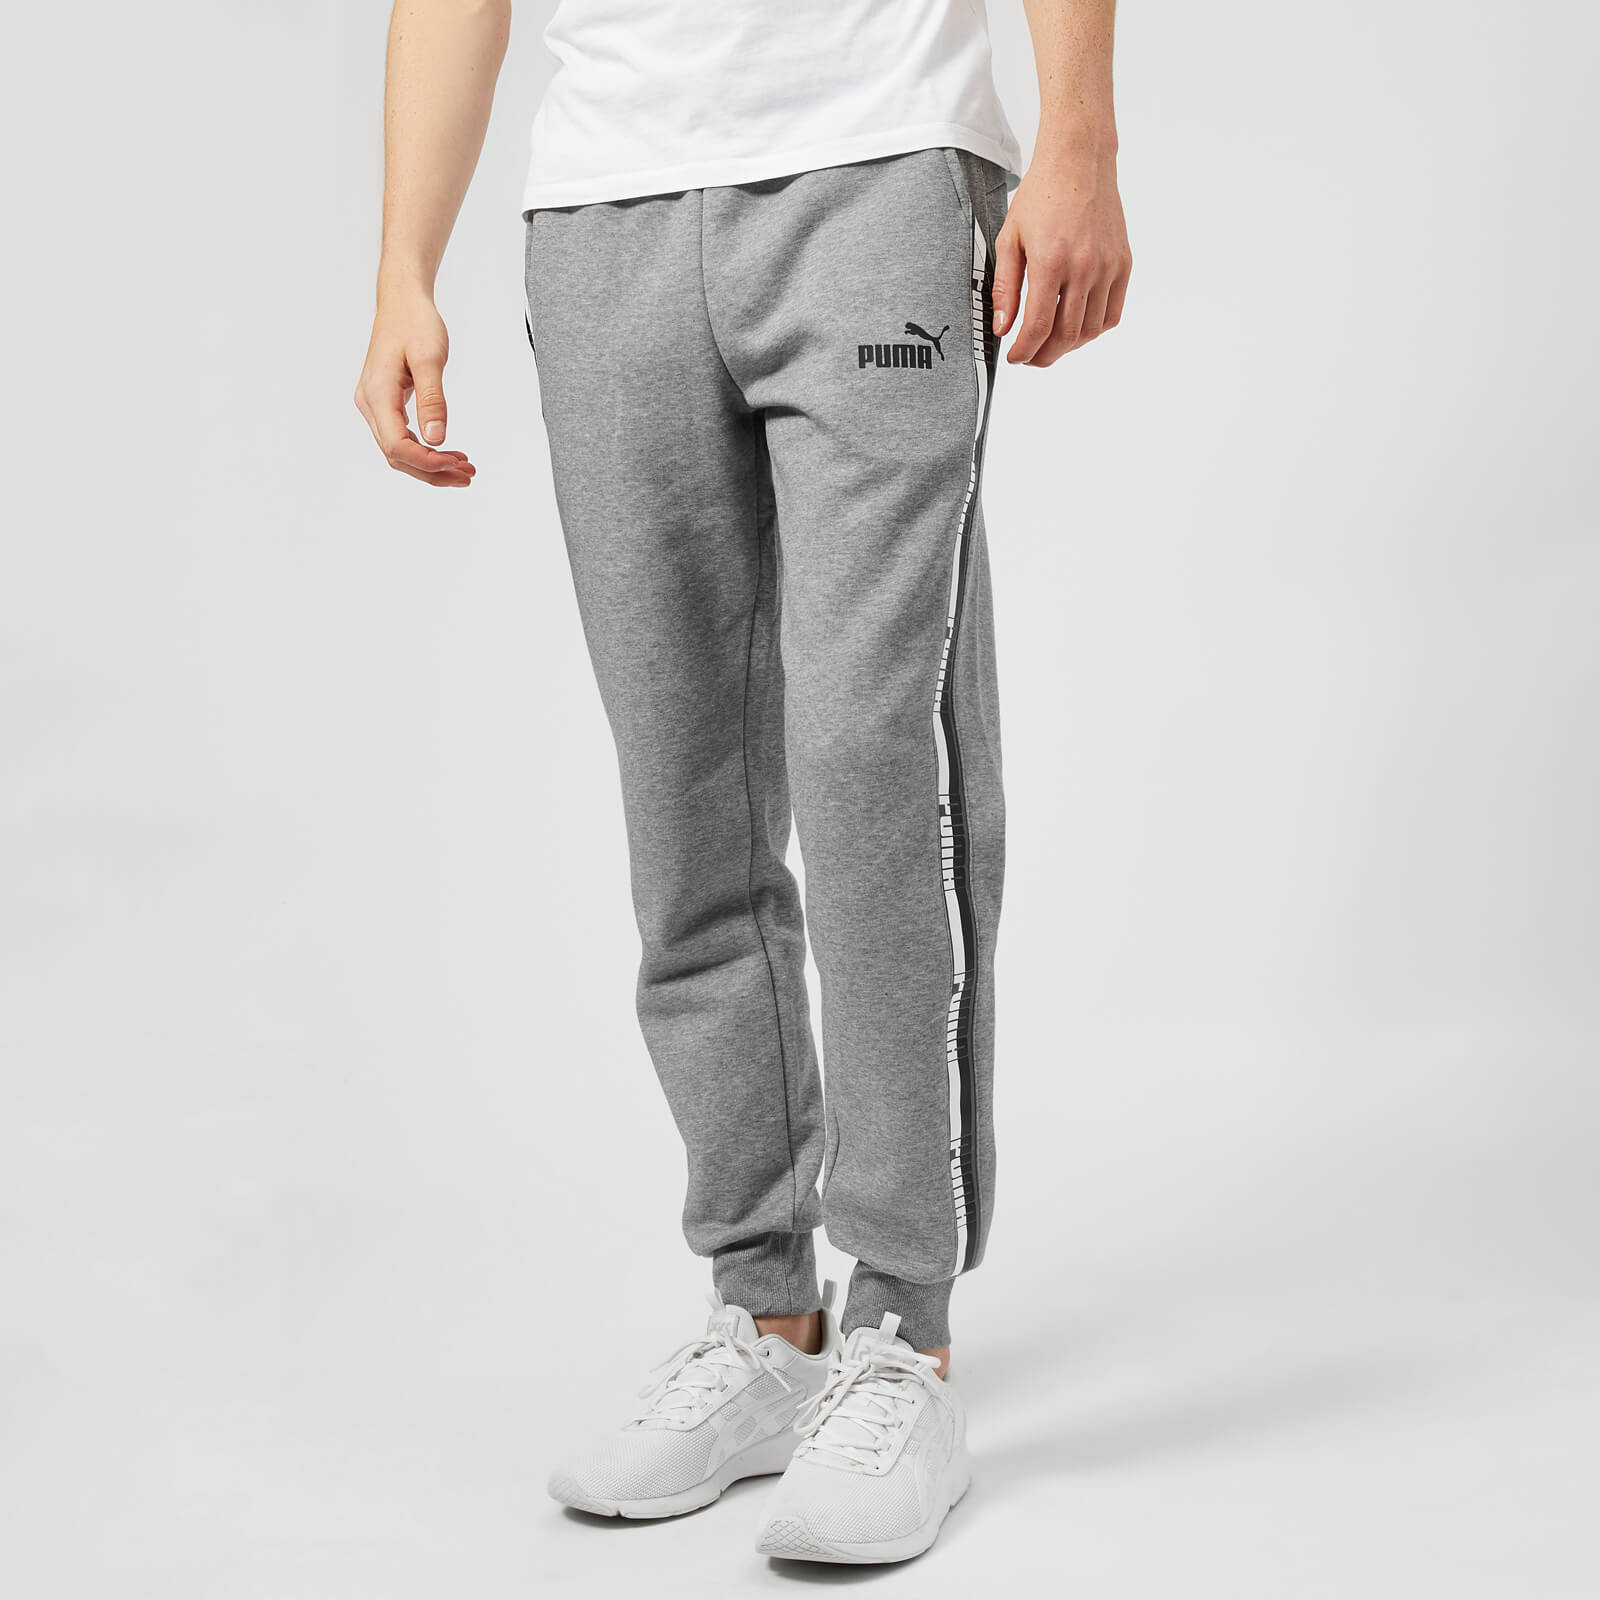 4dfce684a81a Puma Men s Elevated Essential Tape Pants - Medium Grey Heather Clothing